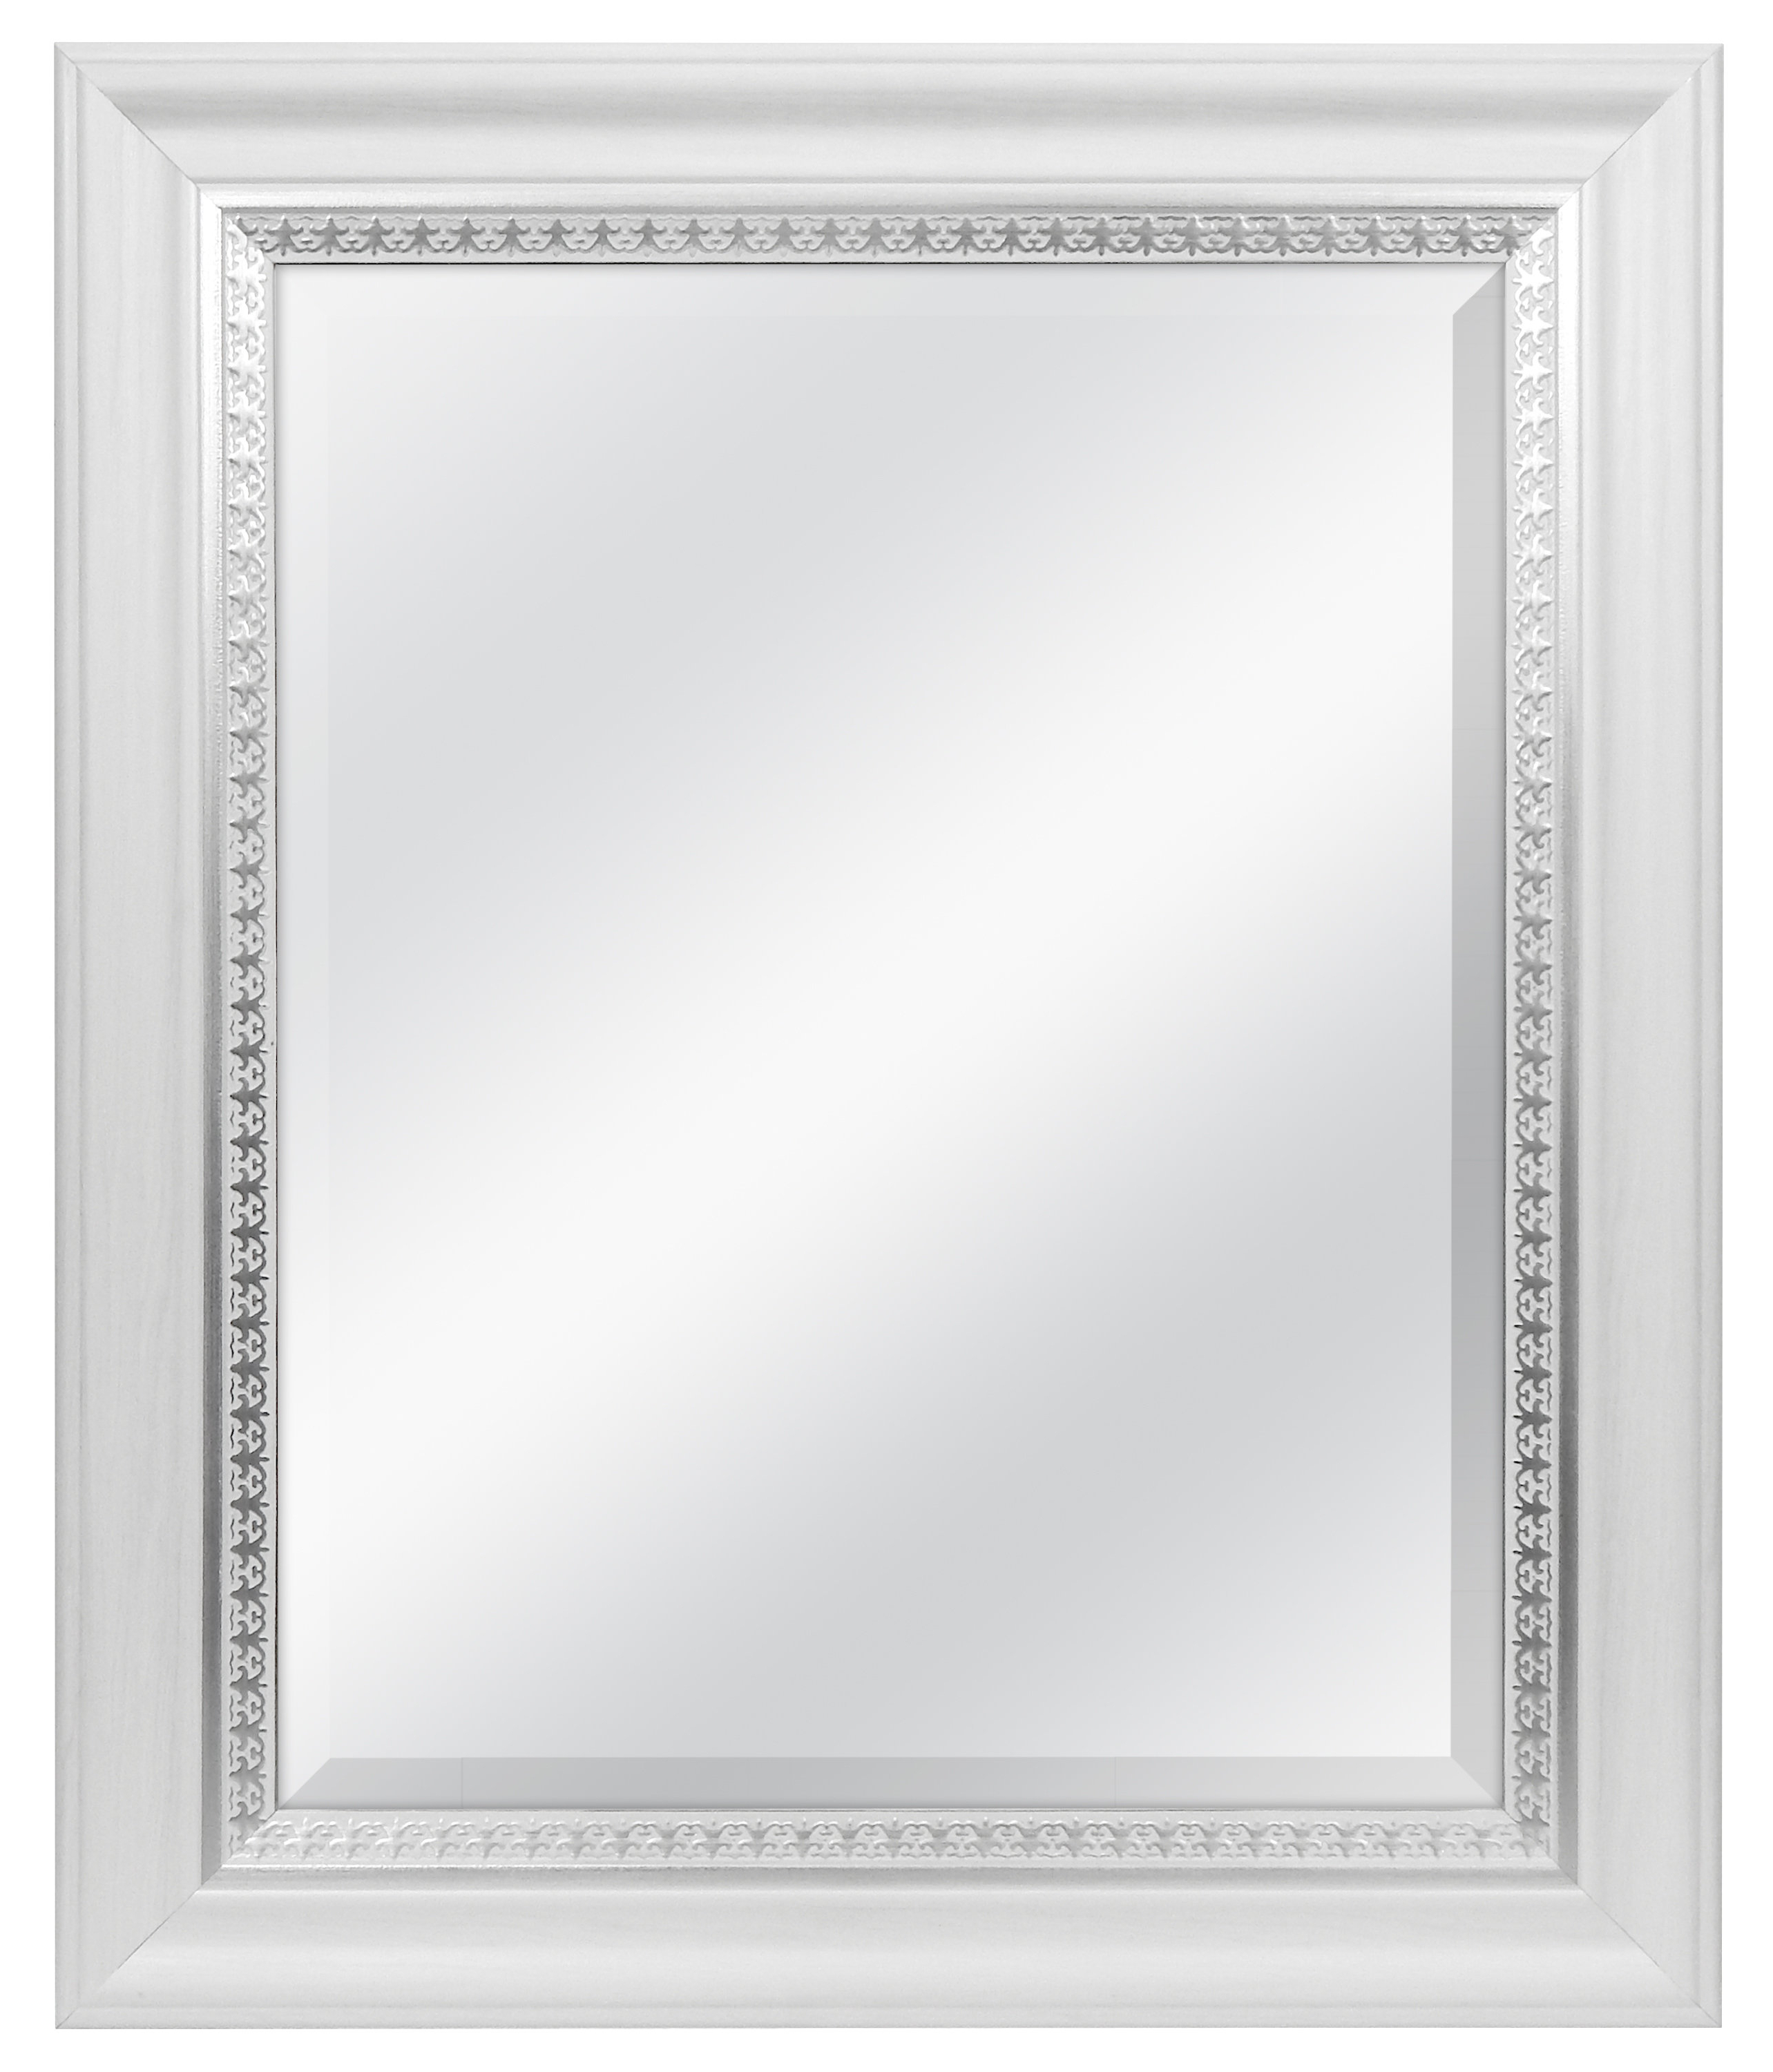 Preferred Dedrick Decorative Framed Modern And Contemporary Wall Mirrors With Regard To Farmhouse Woodgrain And Leaf Accent Wall Mirror (View 17 of 20)